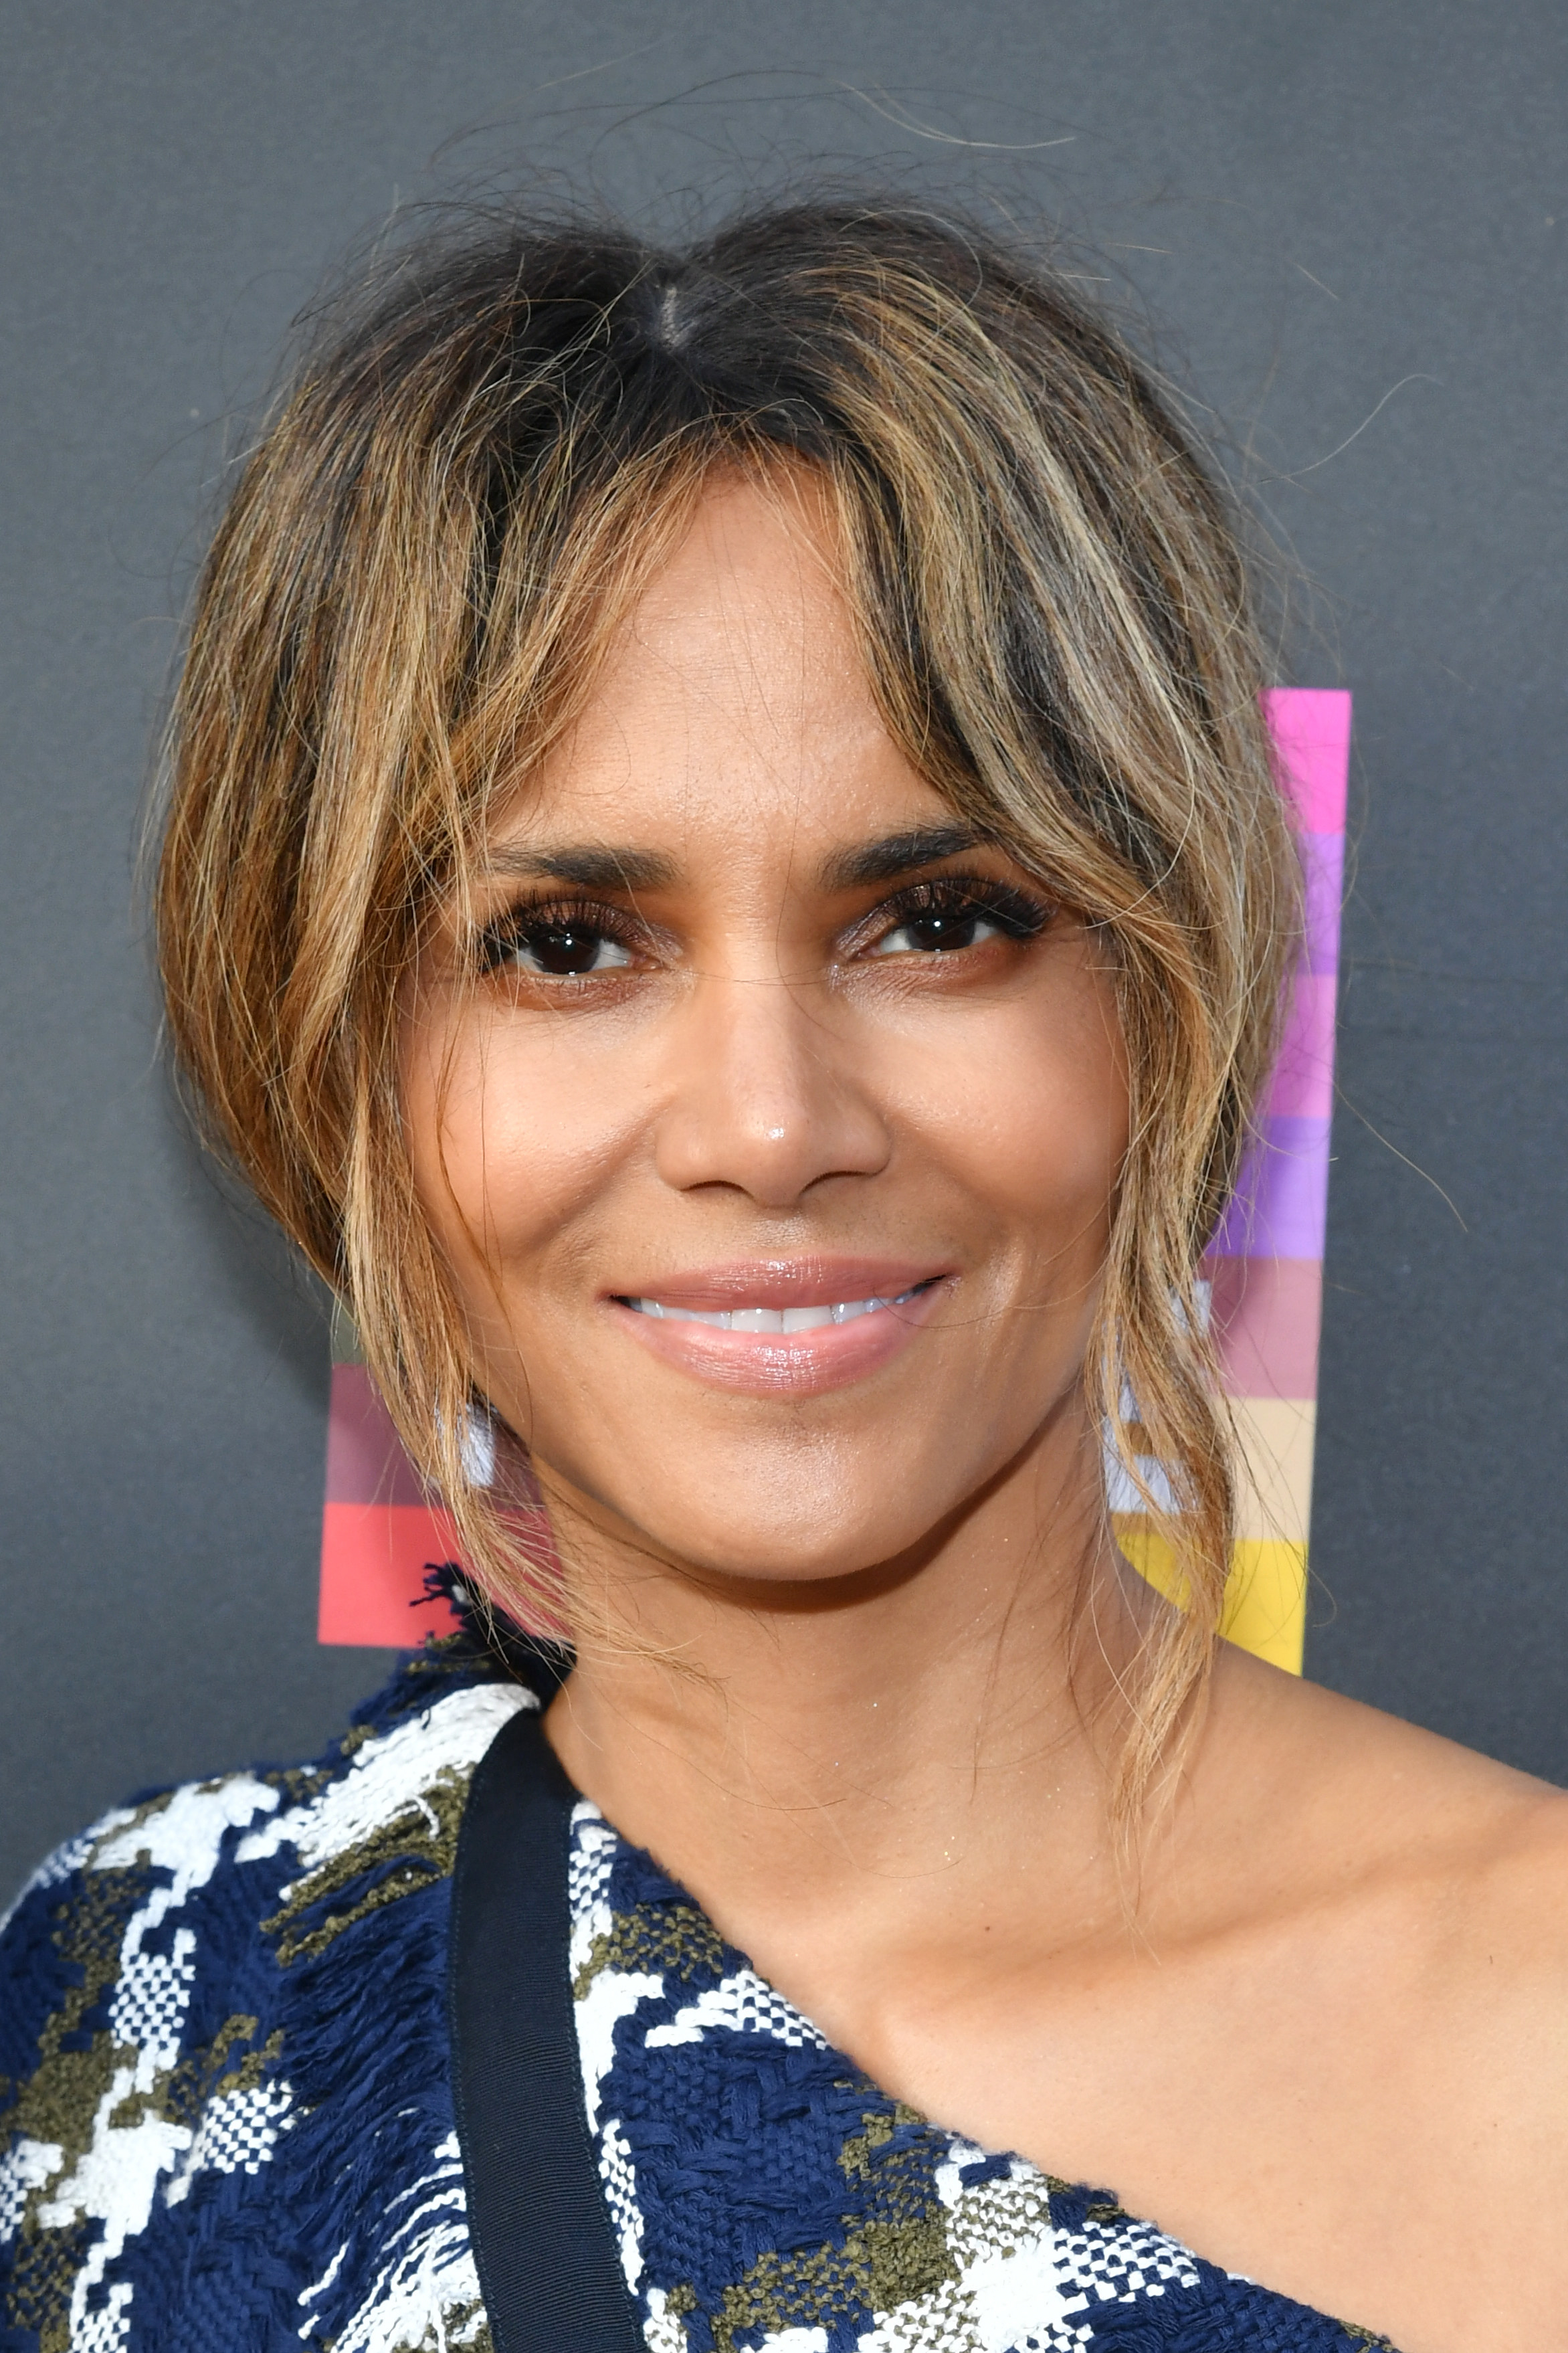 Halle Berry attends the U.S. premiere of 5B at LA Pride on June 07, 2019 in West Hollywood, California